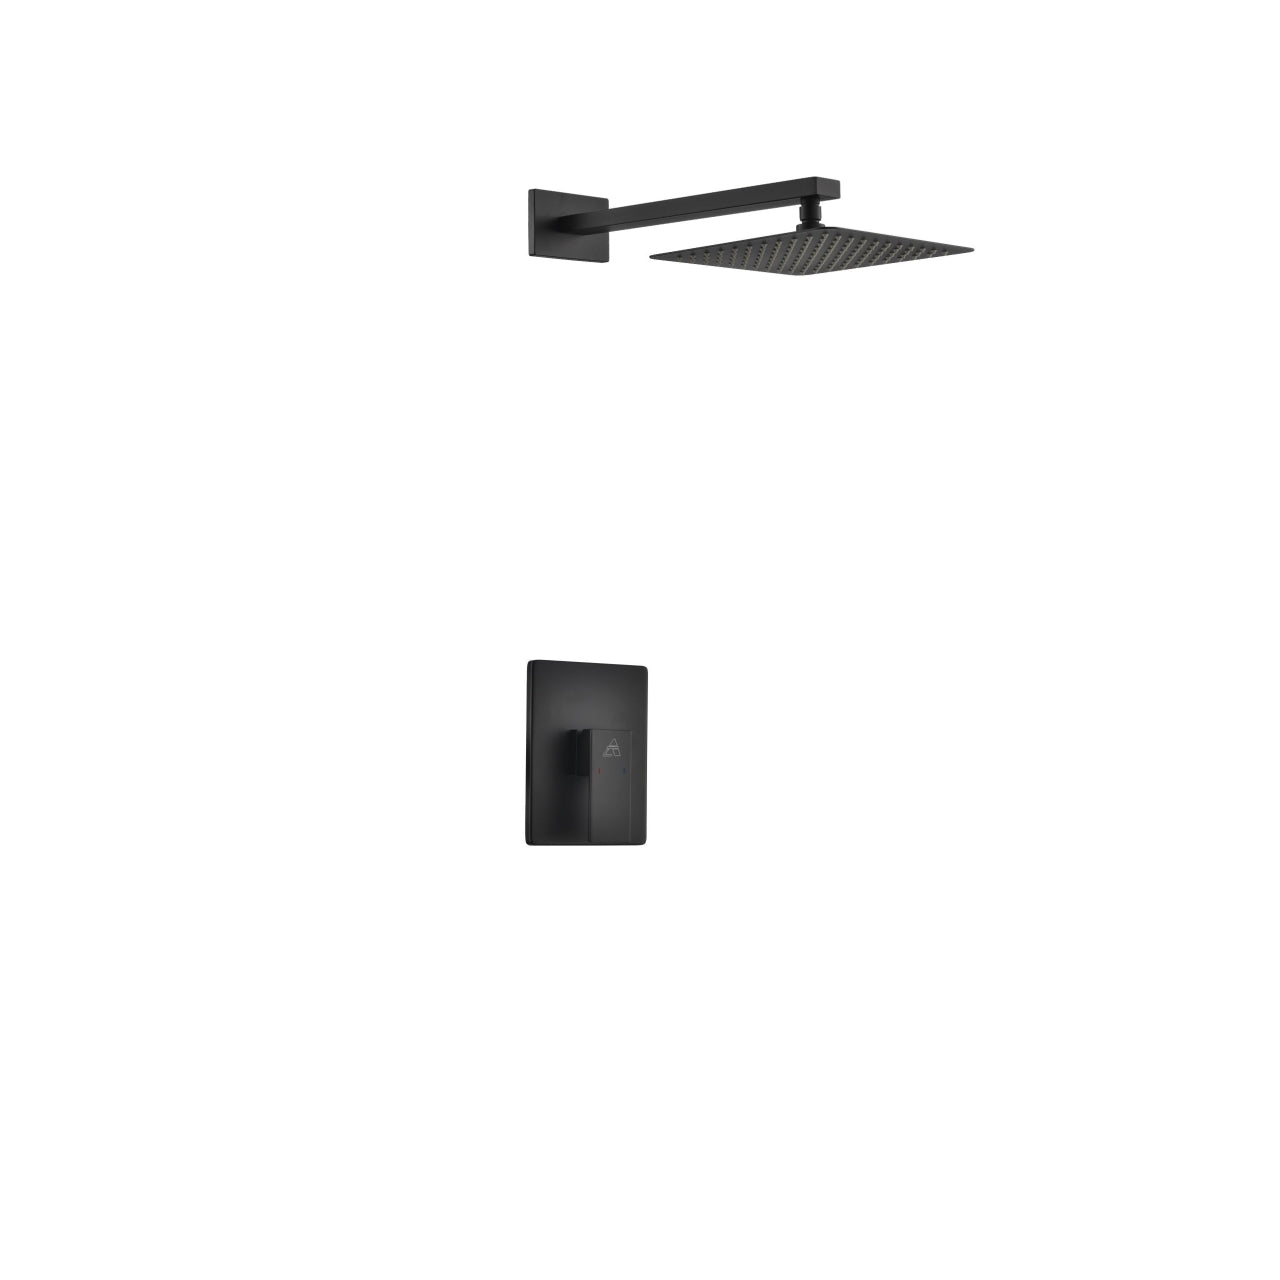 "Aqua Piazza Matte Black Shower Set with 8"" Square Rain Shower"